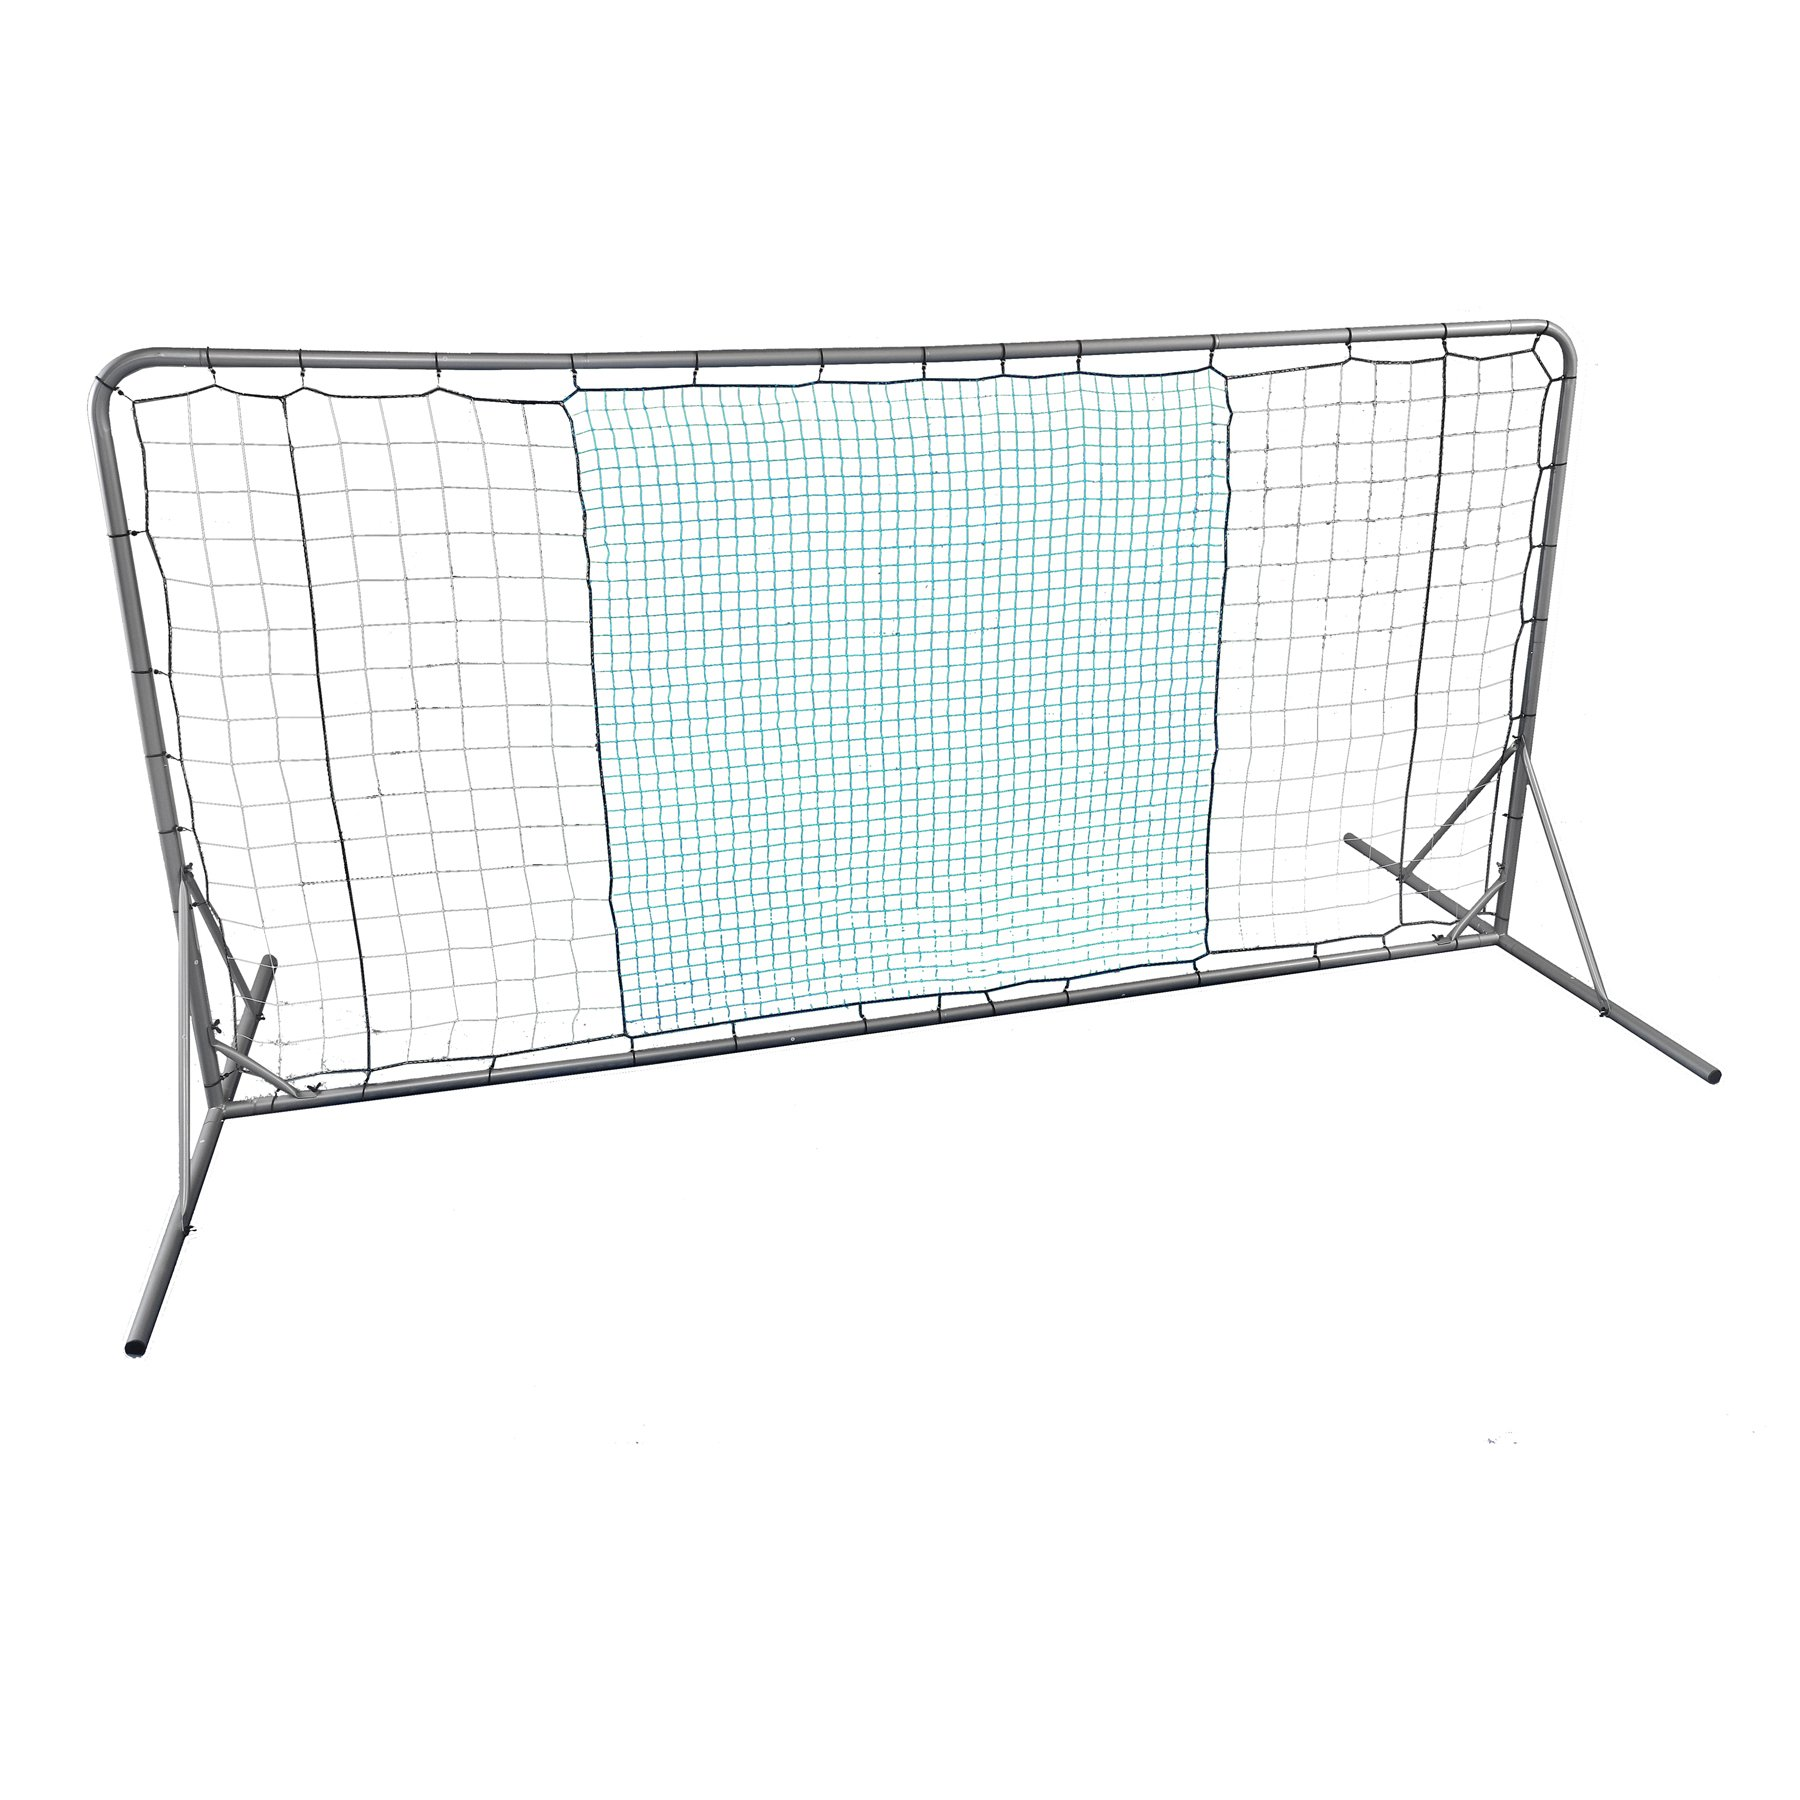 Crescendo Fitness Lion Sports 12 x 6-Feet Soccer Rebounder